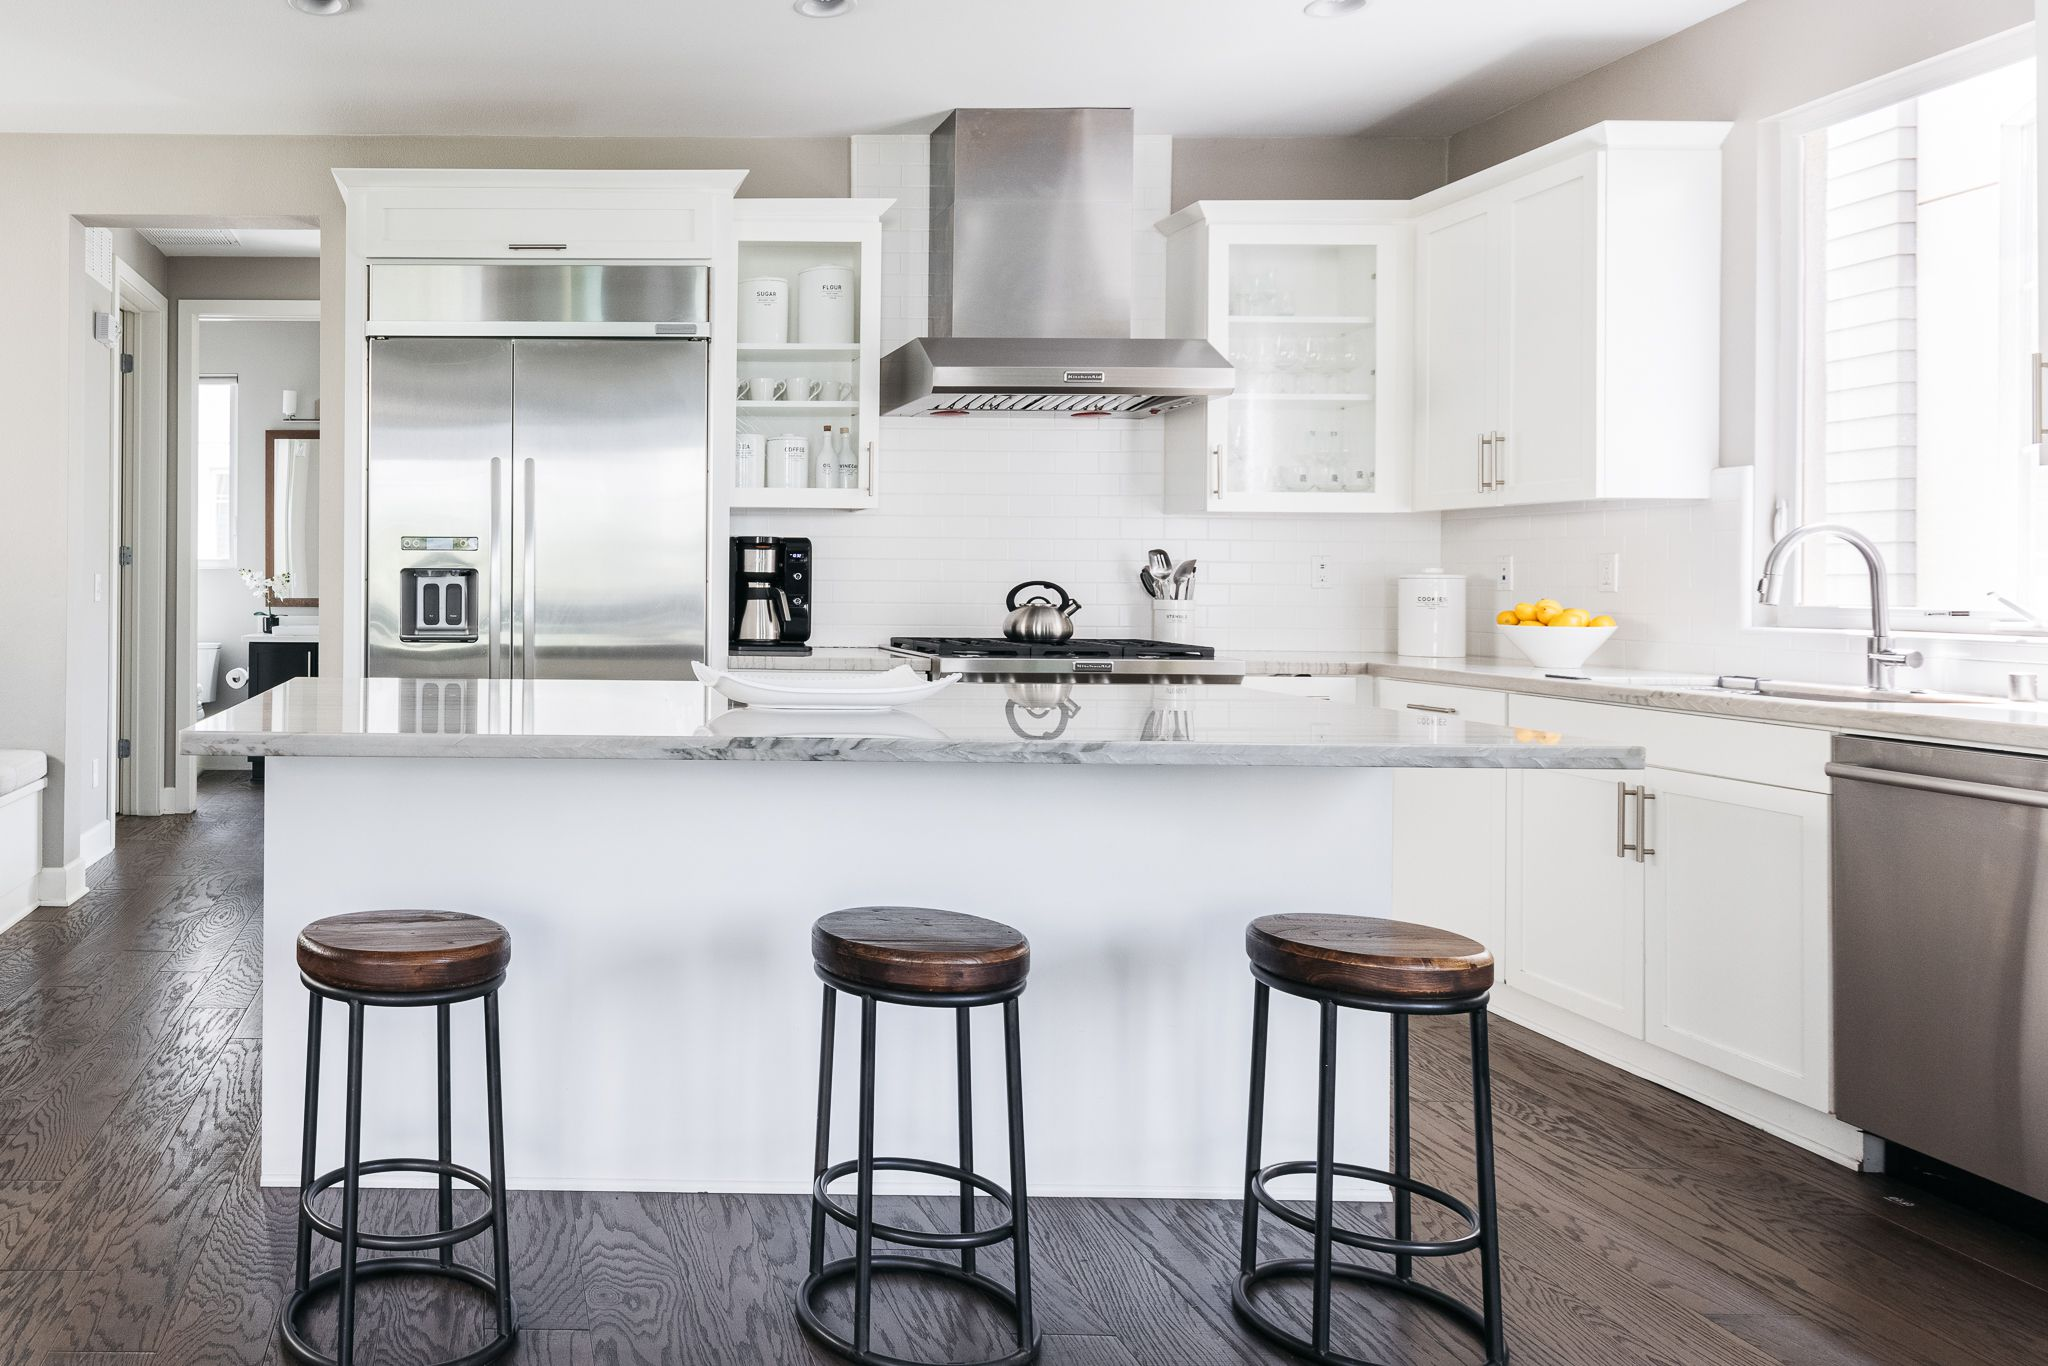 Modern kitchen cabinet ideas for a contemporary aesthetic - Livingetc